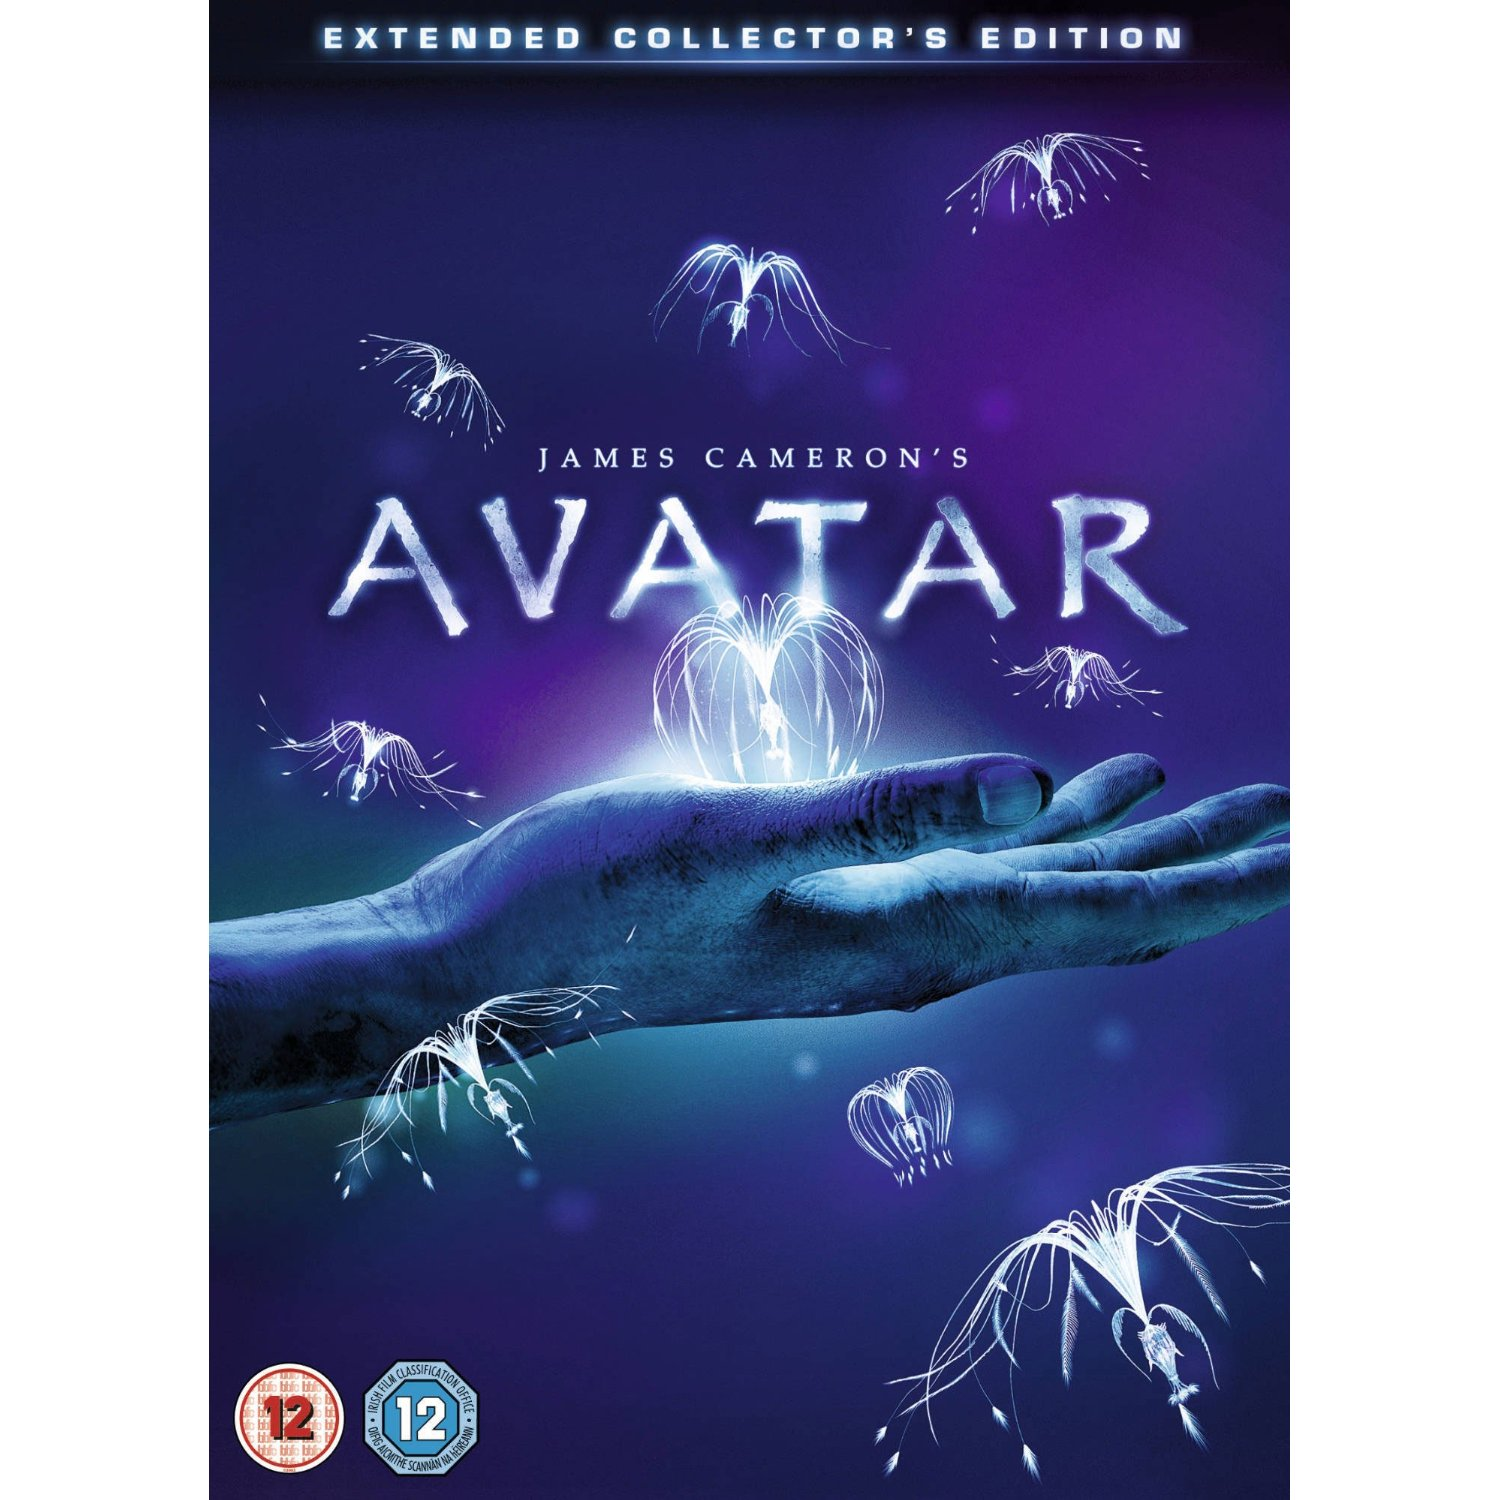 Avatar 3: POPSICULTURE: DVD & Blu-ray Round Up: Avatar Extended